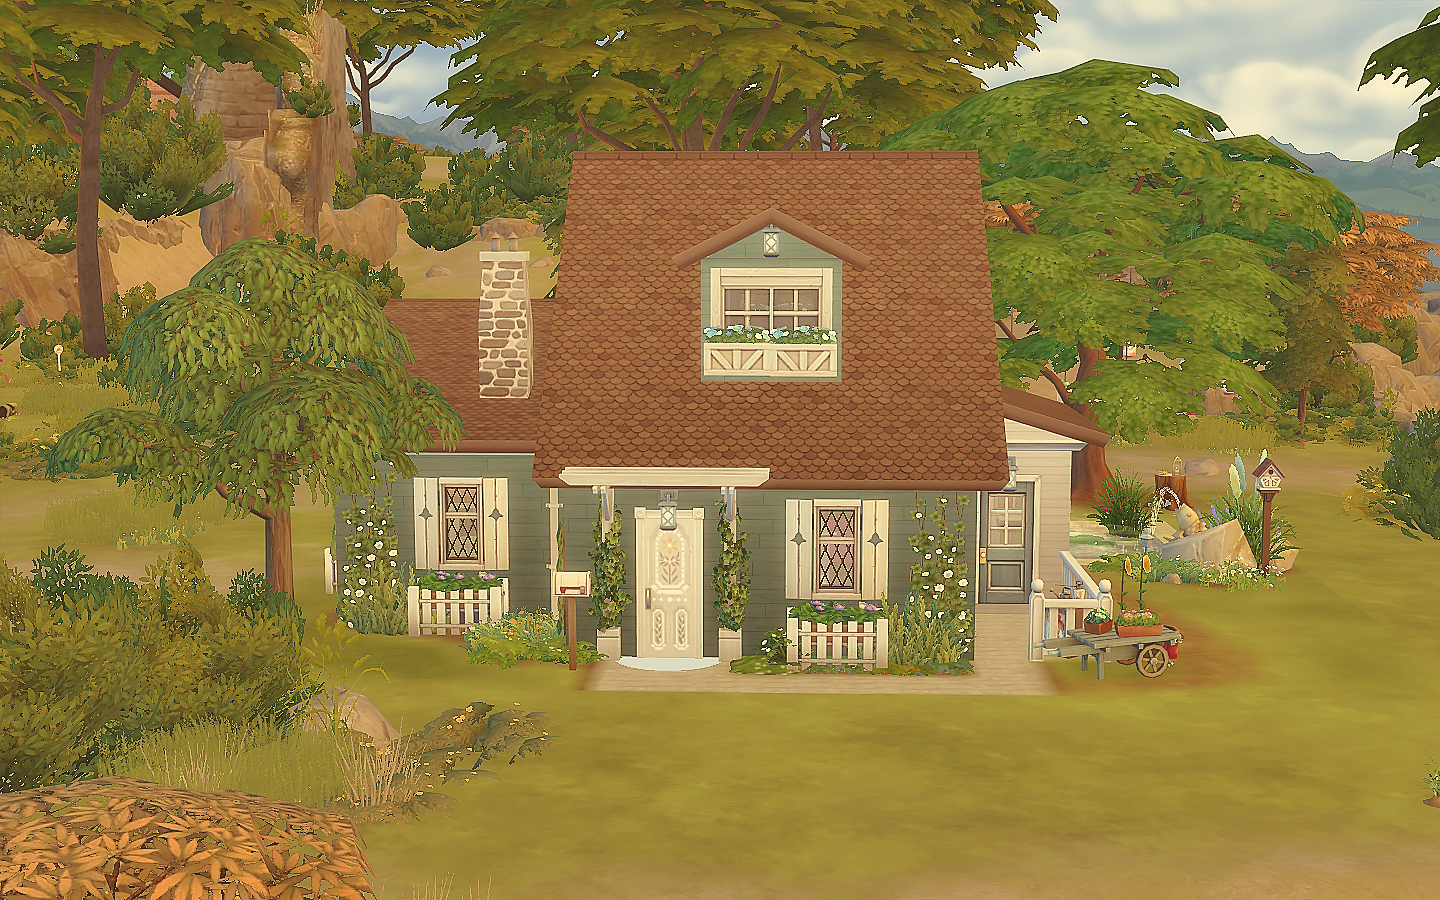 Casa Hippies : House 21 the sims 4 via sims